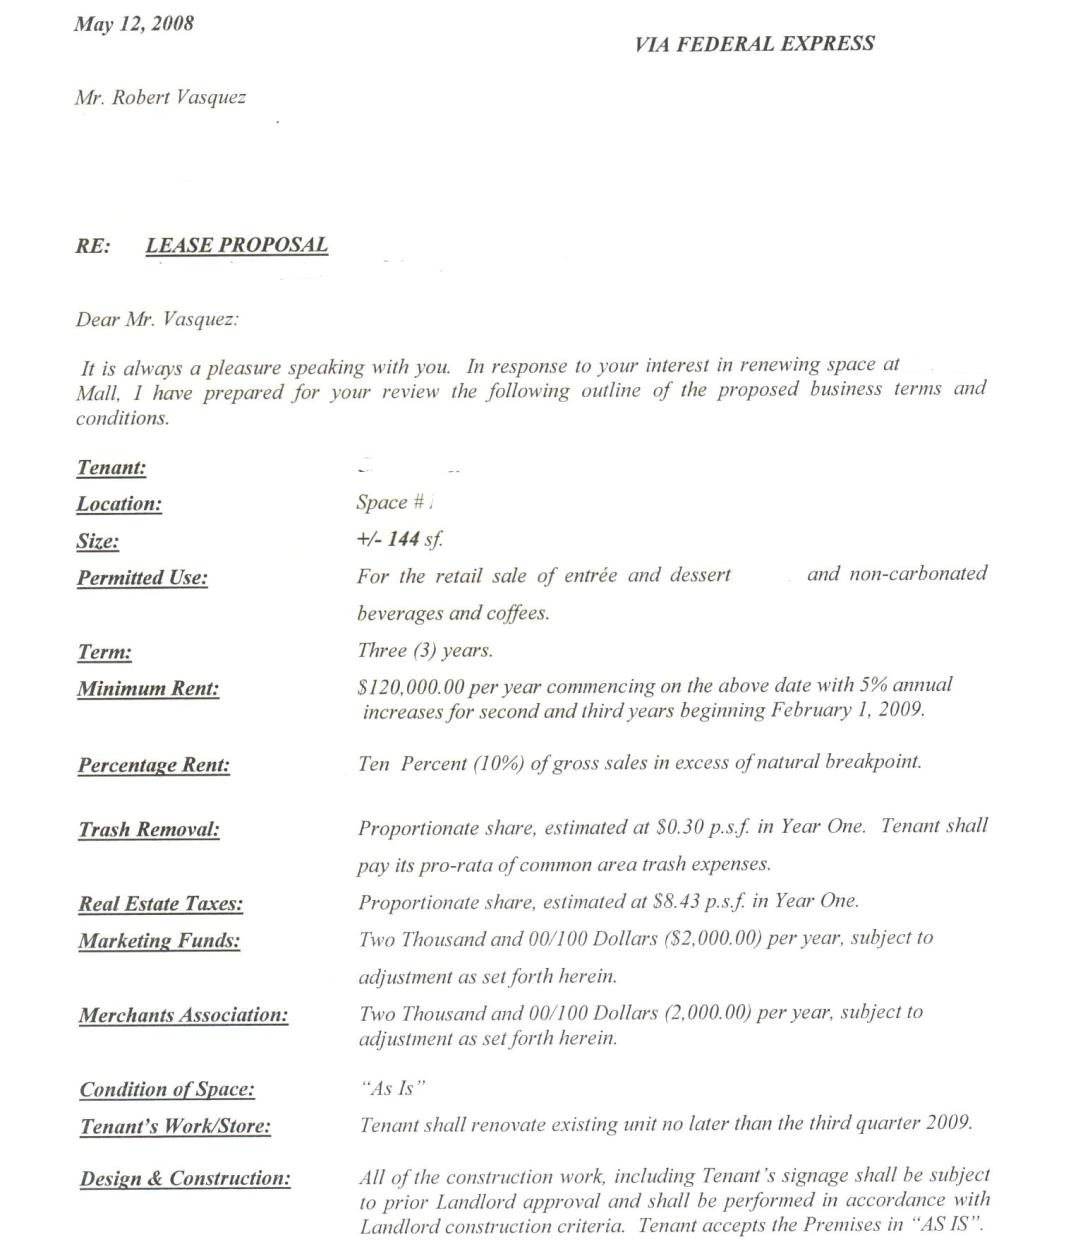 Letter Of Intent to Lease Commercial Property Template - Letter Intent Reale Lease Hd Sample Restaurant Loi Real